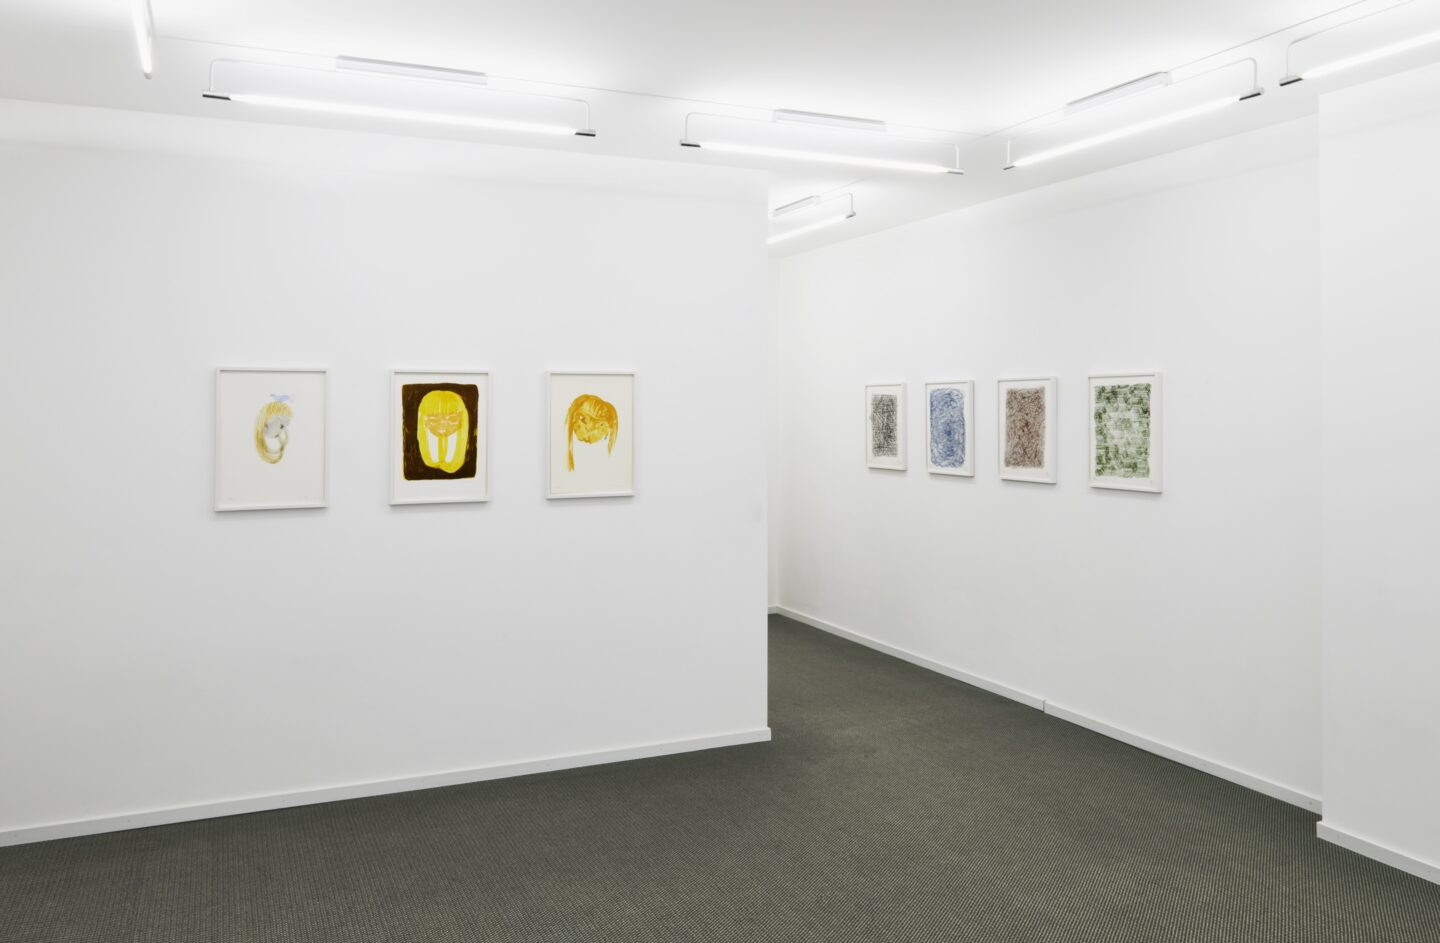 Exhibition View Groupshow «Intaglio and Lithography: Works on Paper; view on Leiko Ikemura and Richard Deacon» at Edition VFO, Zurch, 2020 / Photo: Sabina Bosch / Courtesy: the artists and Edition VFO